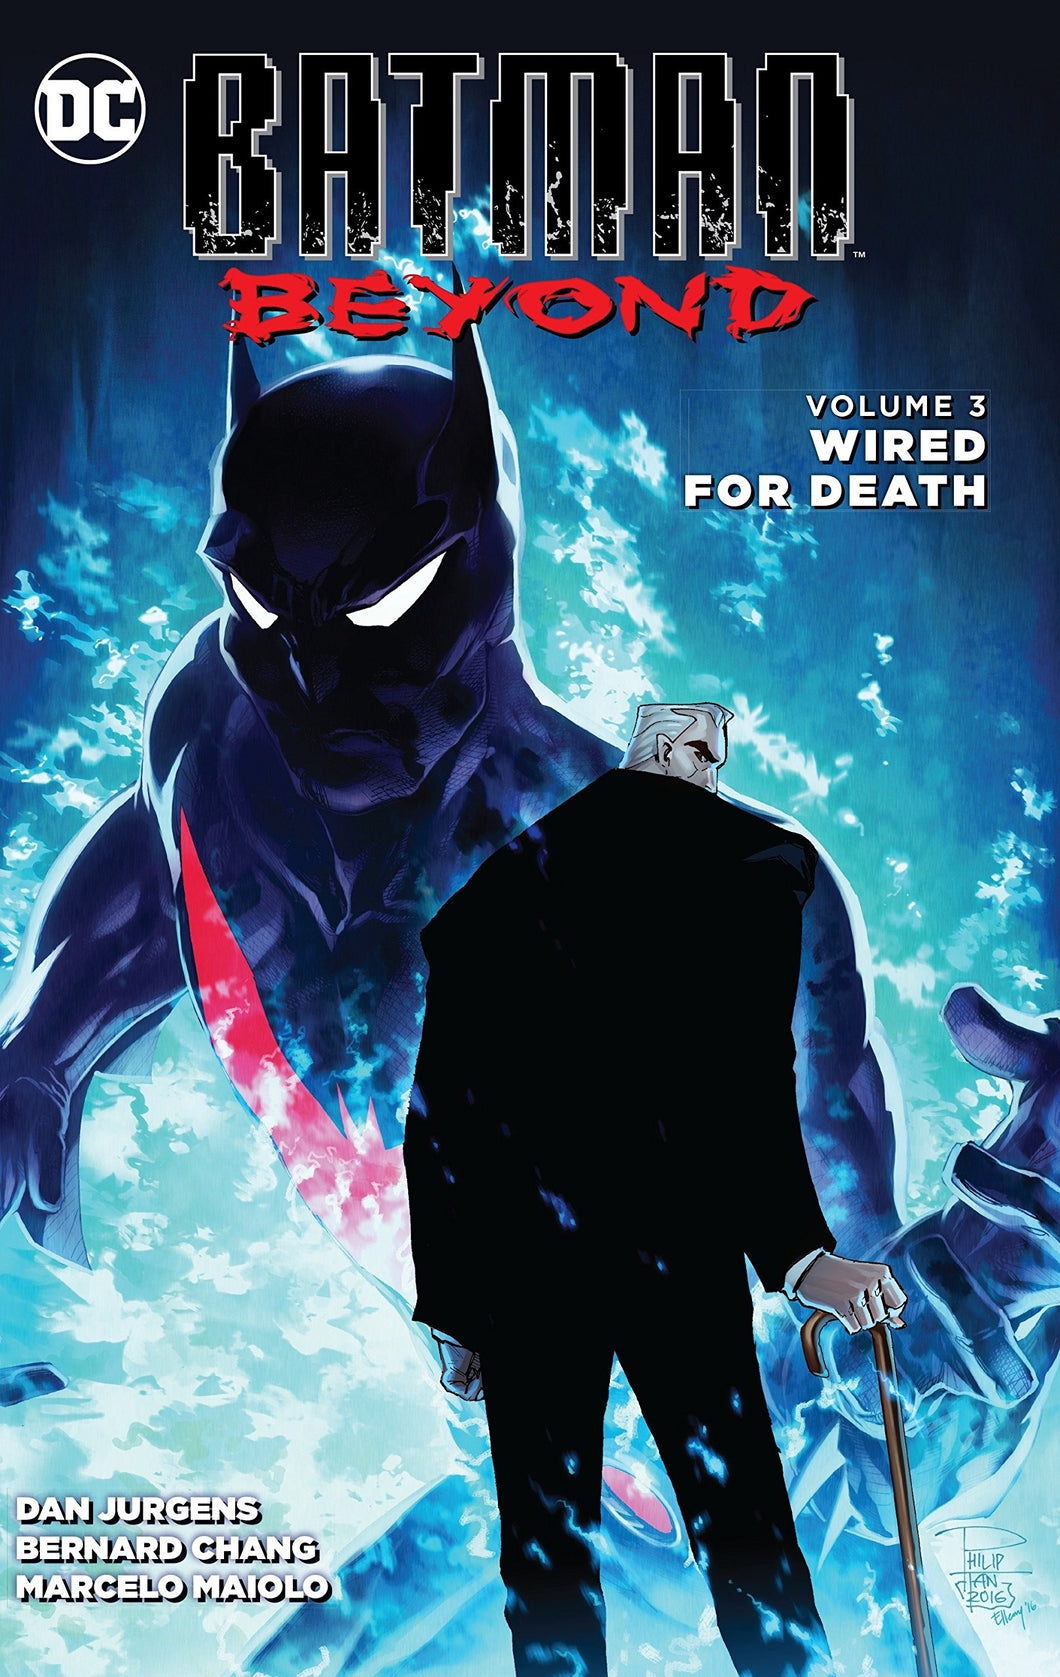 Batman Beyond Vol. 3 : Wired for Death